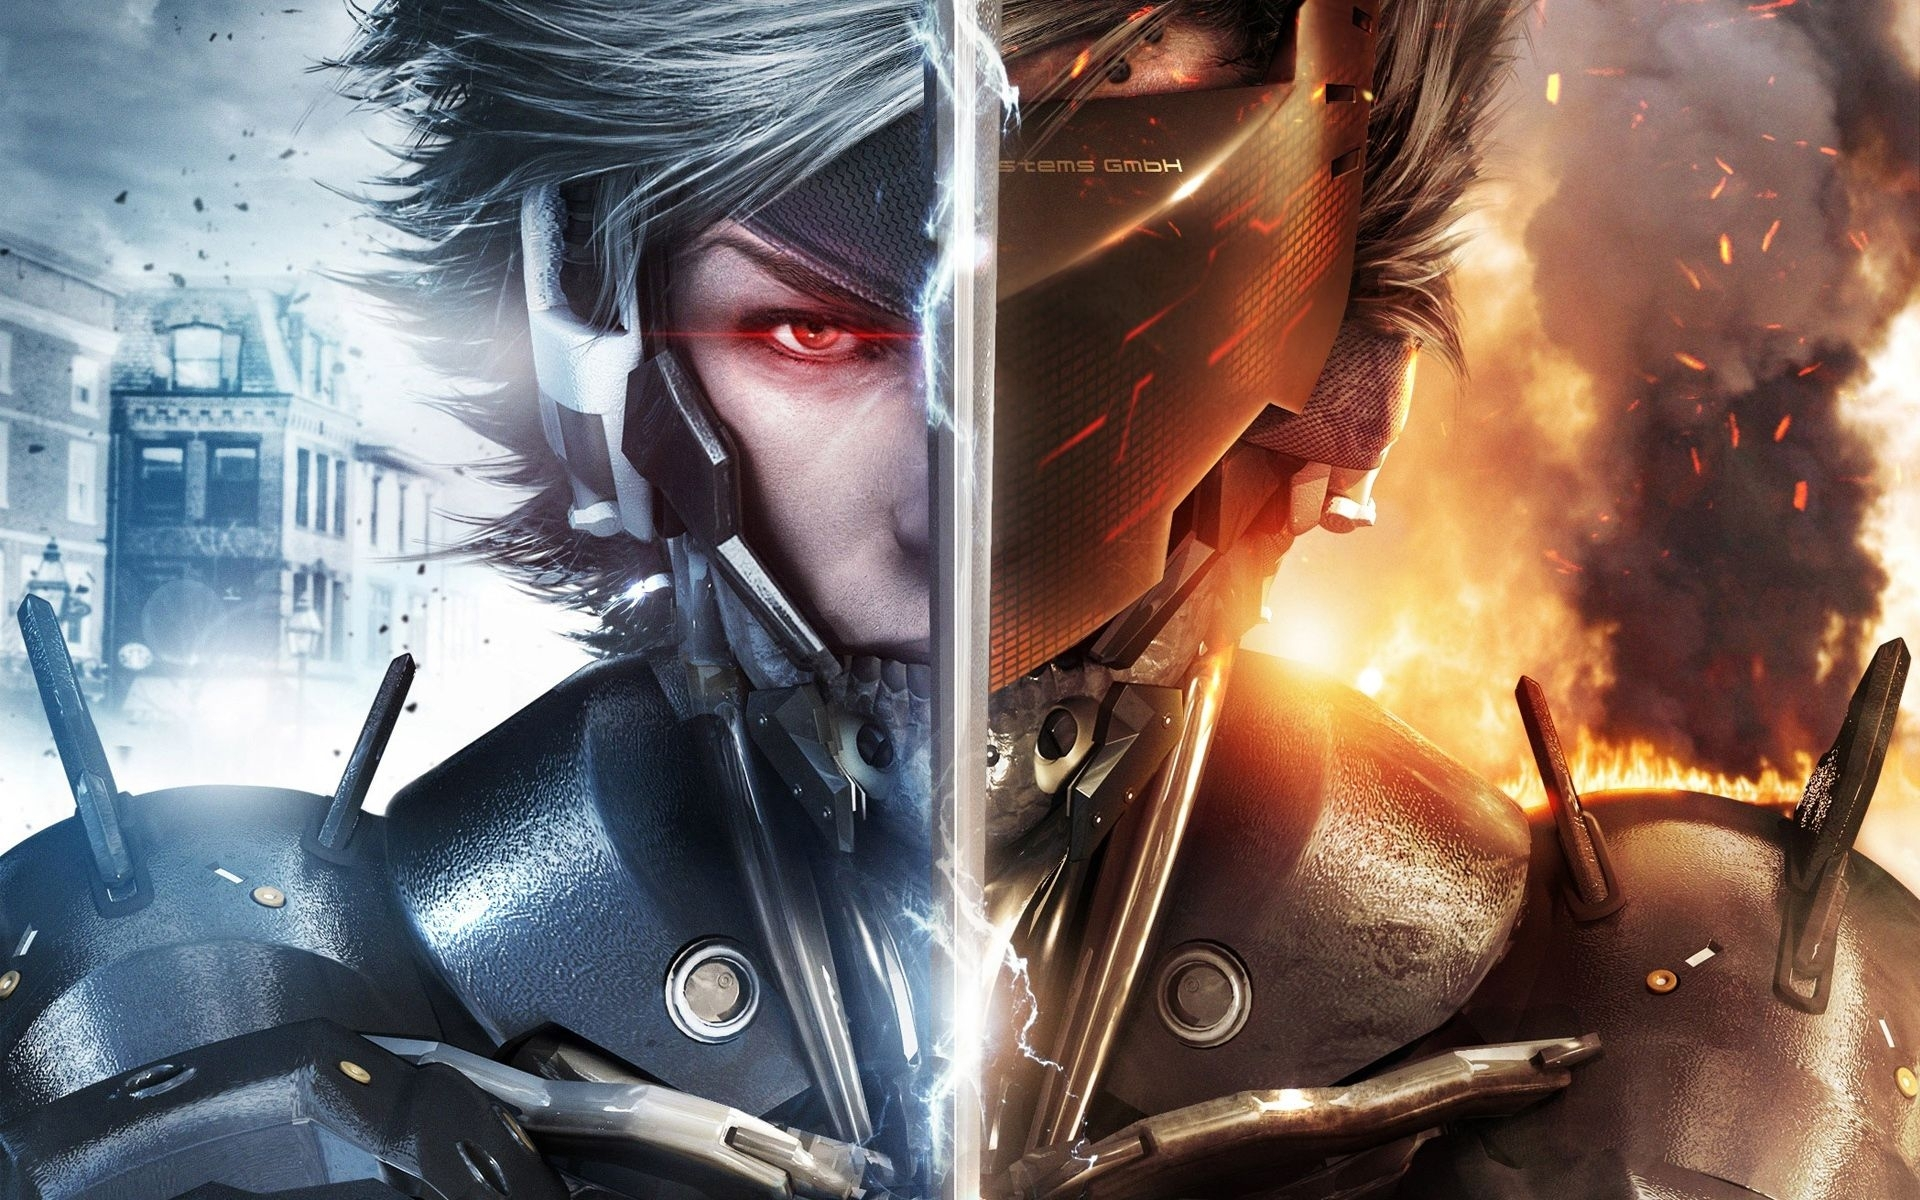 raiden metal gear rising revengeance wallpapers http://www